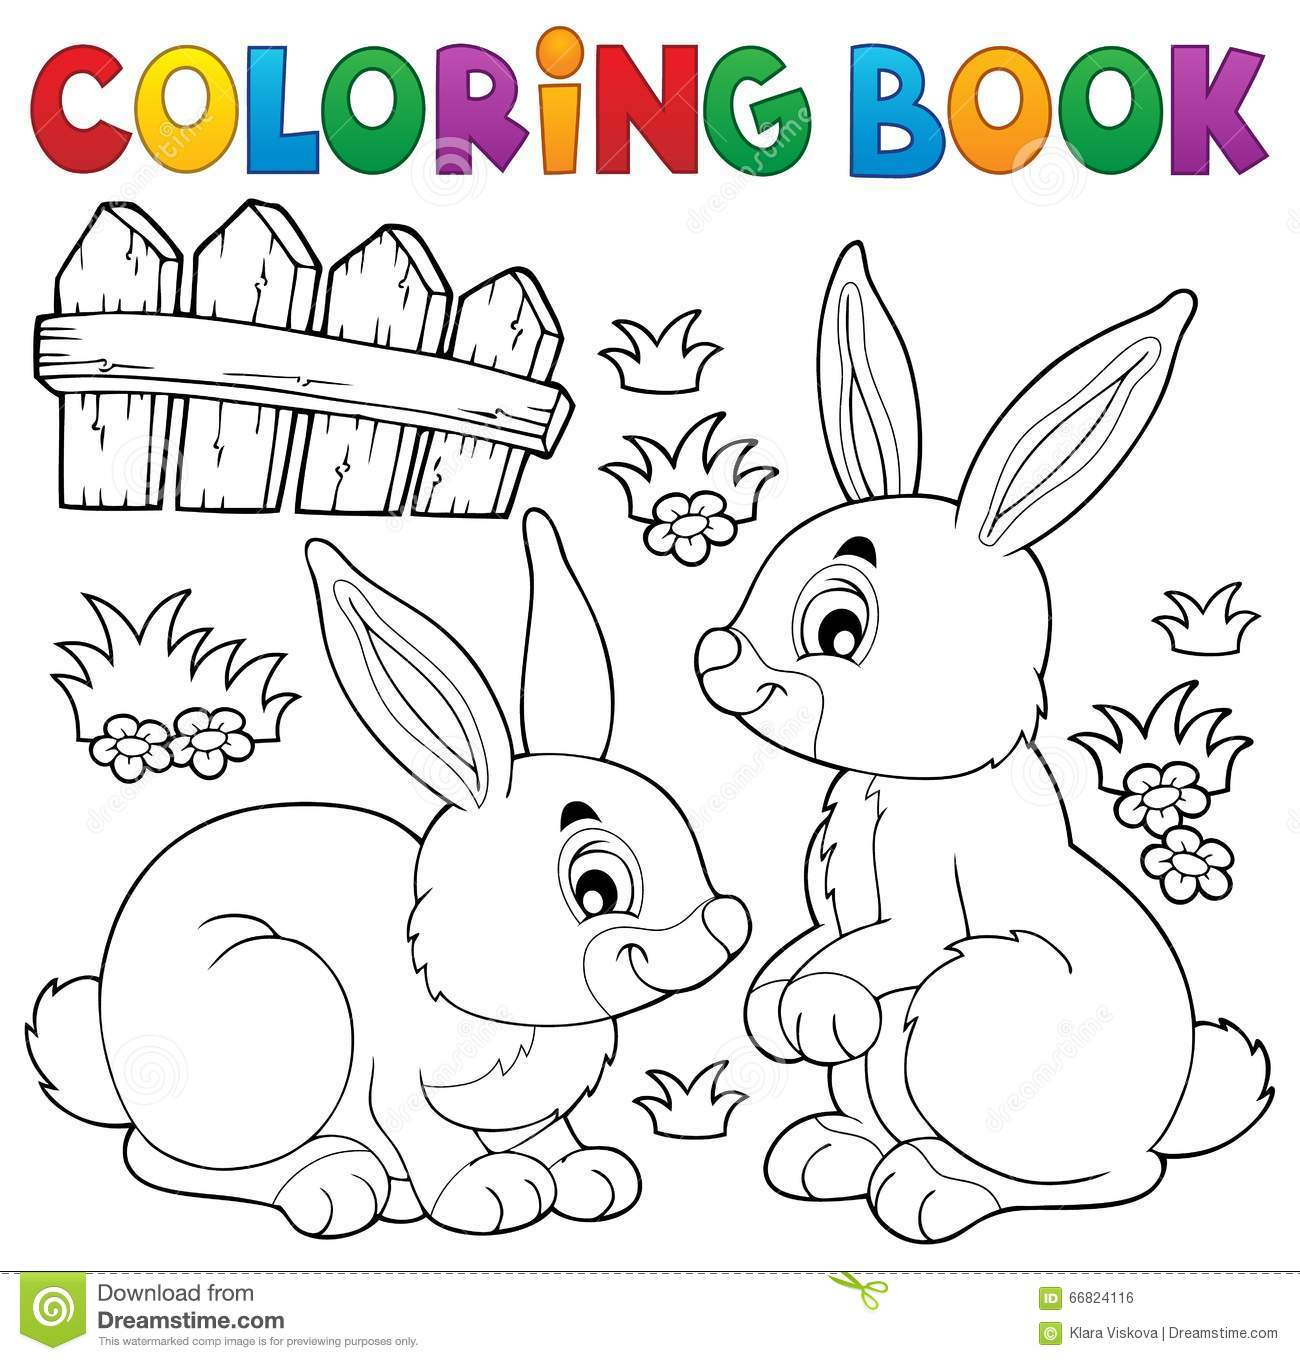 coloring book rabbit pictures : Coloring Book Rabbit Topic 1